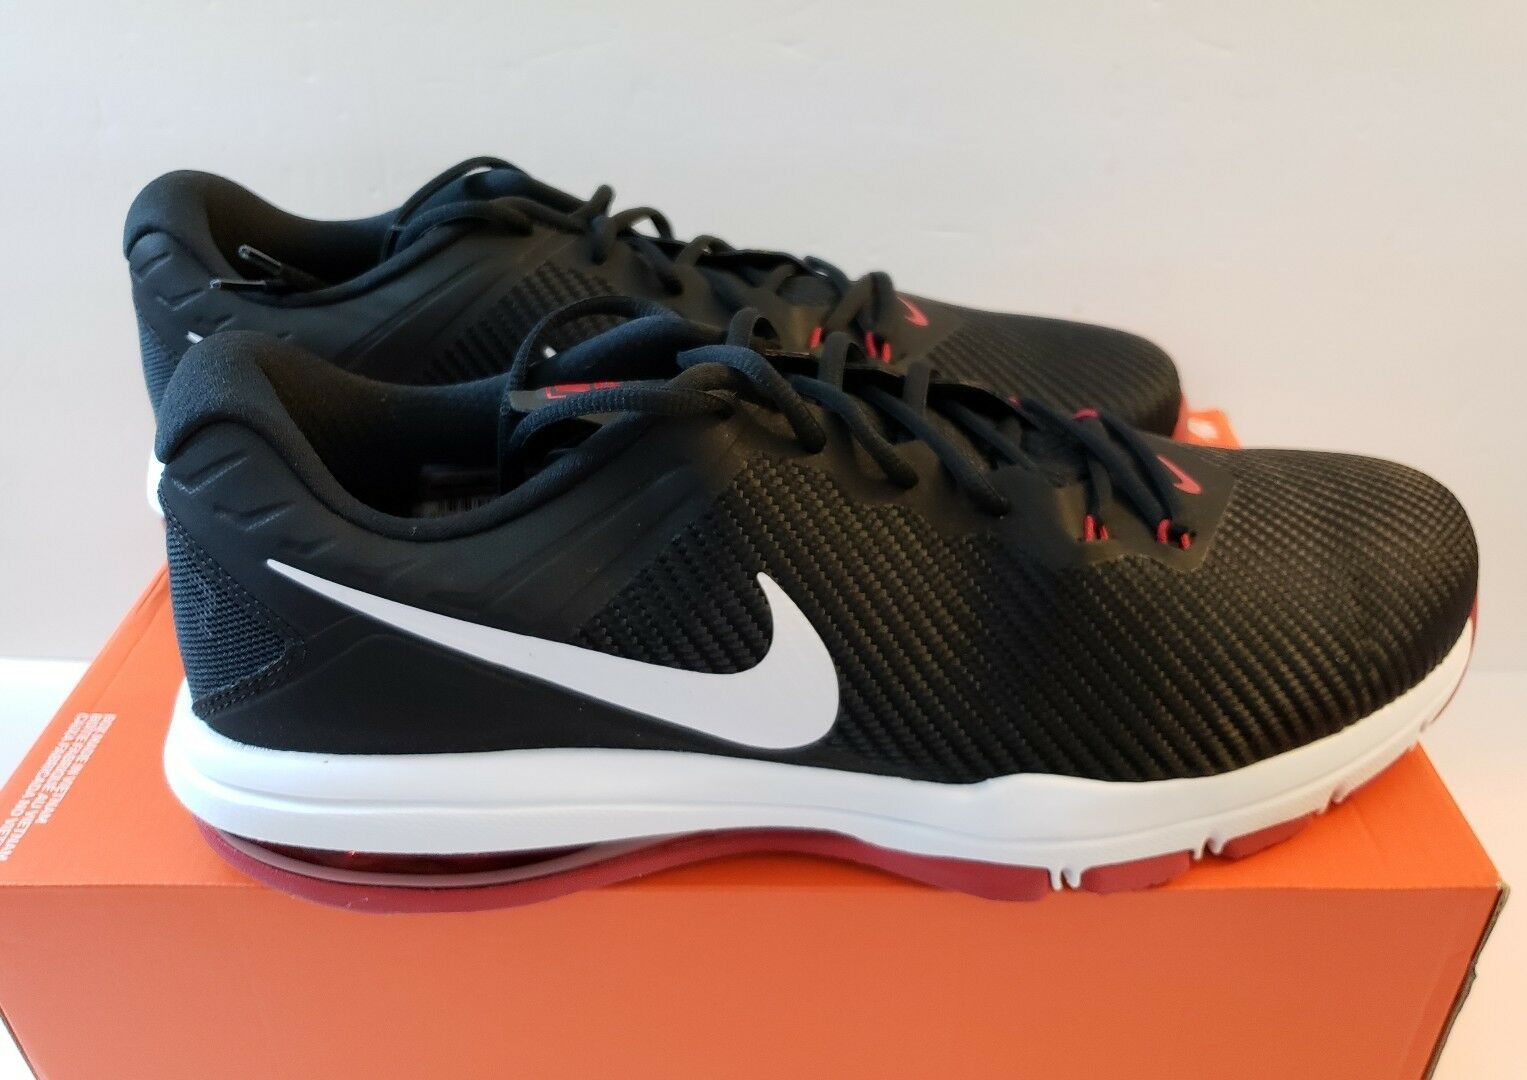 NIKE Mens AIR MAX FULL RIDE TR 1.5 US SIZE 15 Shoes - Black/White/Red